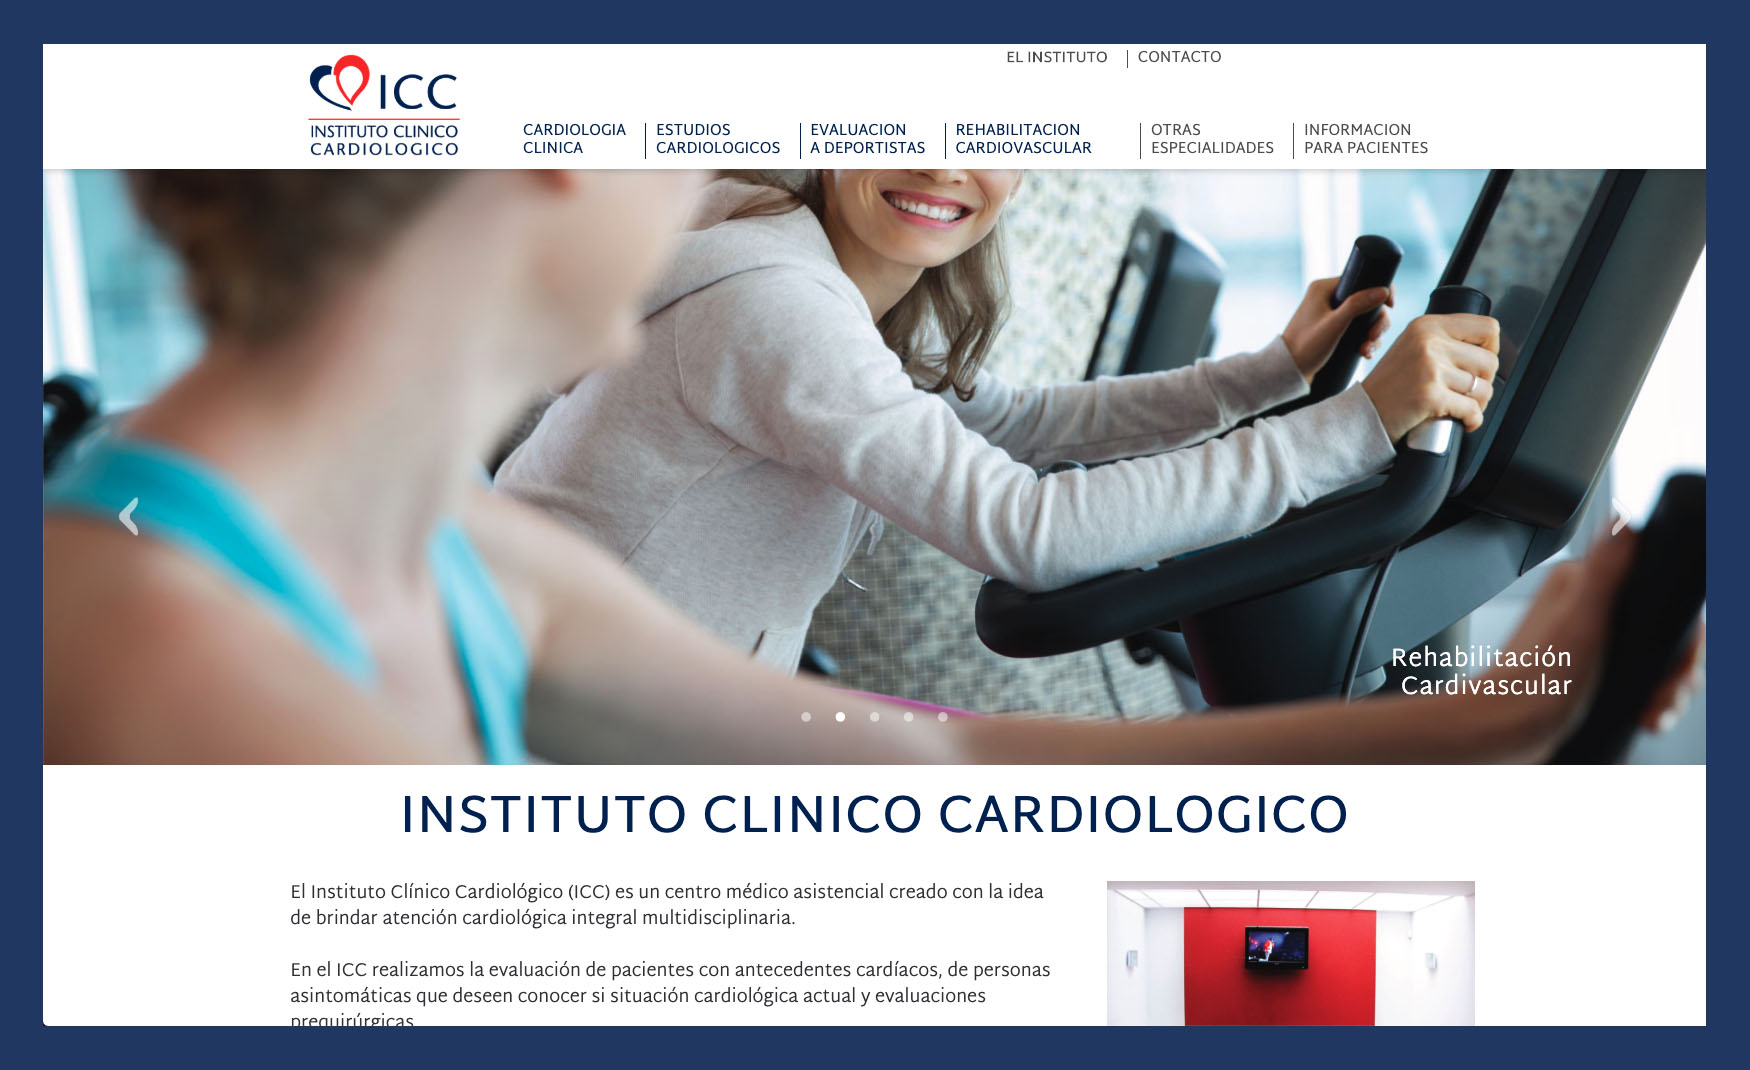 Instituto Clínico Cardiológico, Logo and Web design. 4